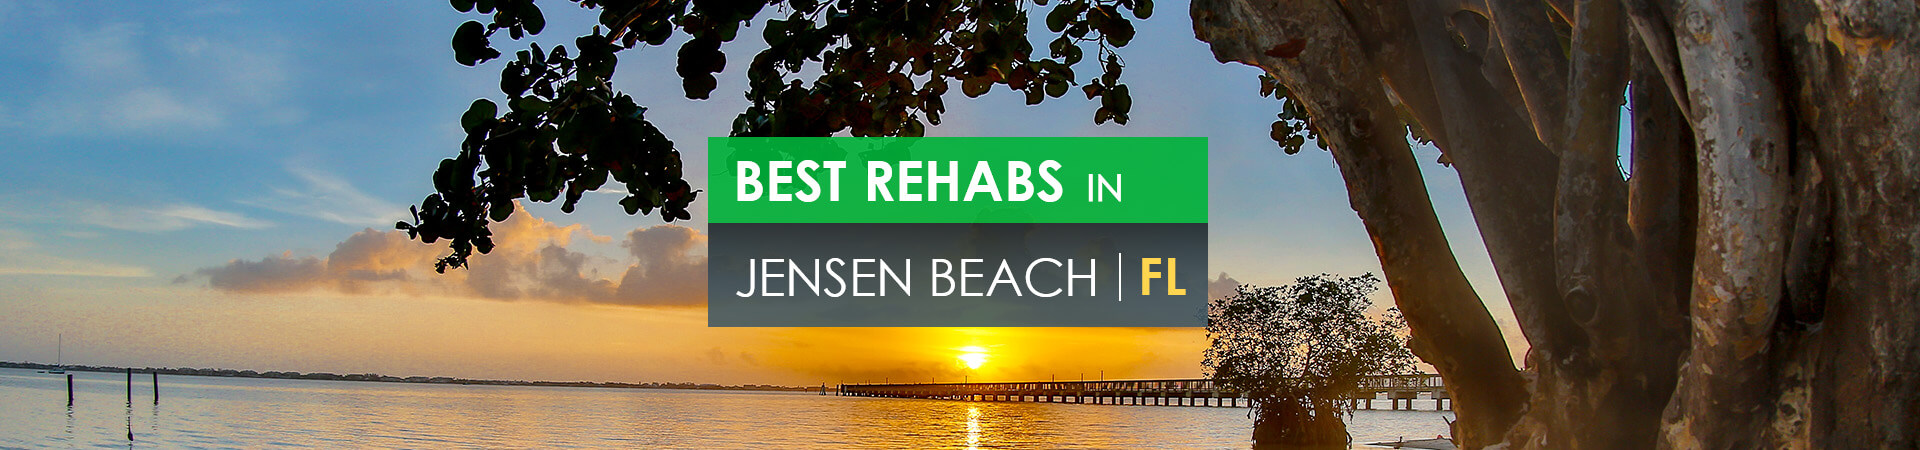 Best rehabs in Jensen Beach, FL